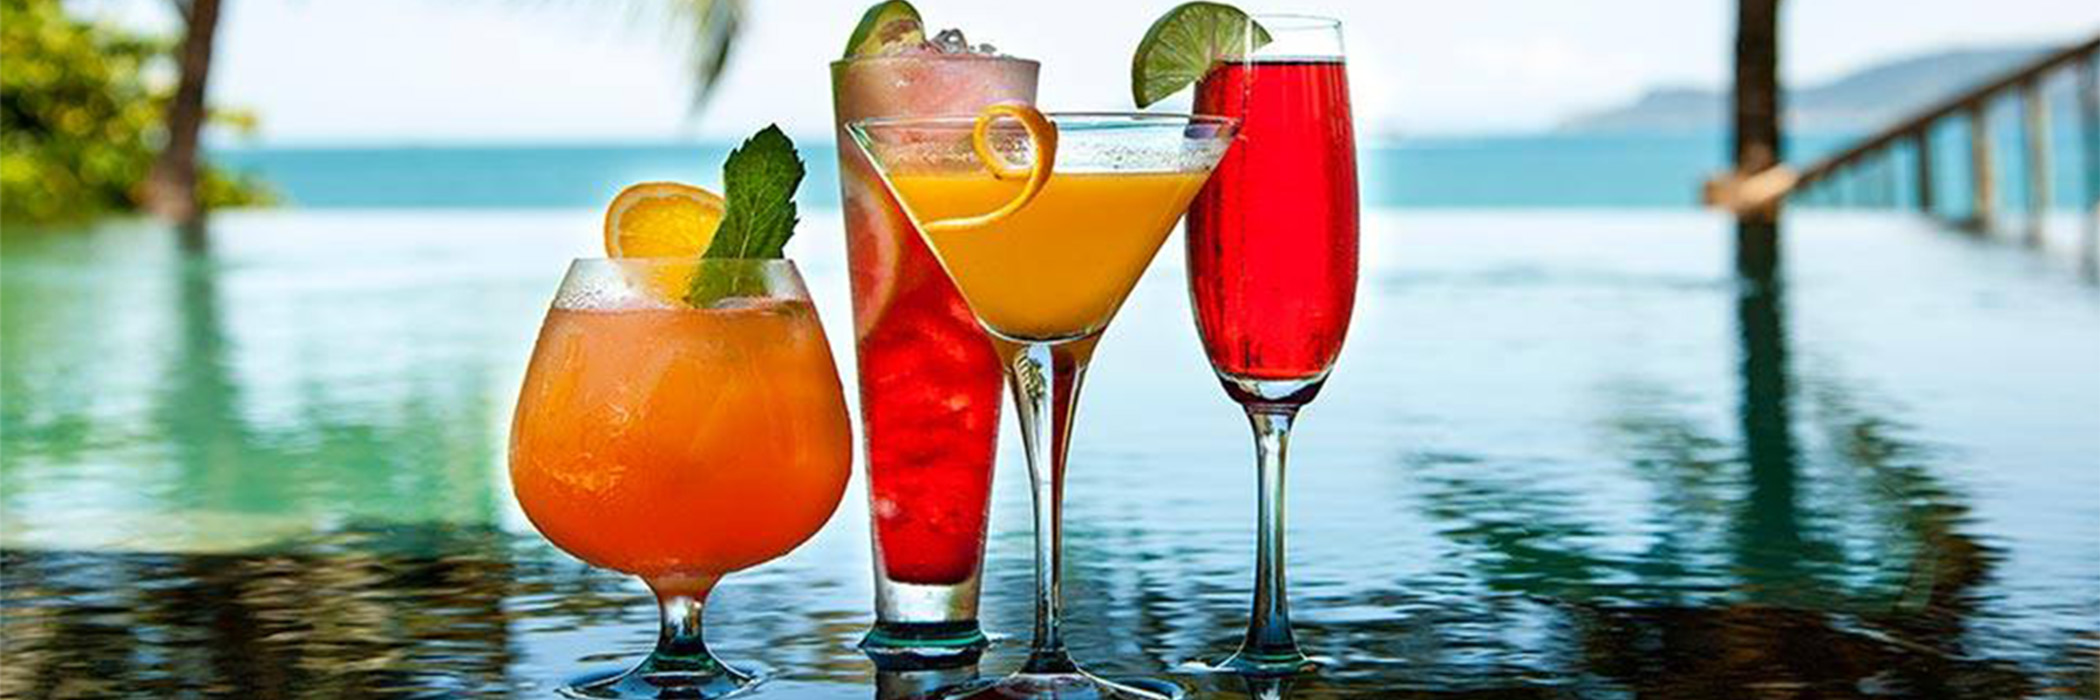 TW GUAIMBÊ EXCLUSIVE SUITES HOTEL = drinks coloridos